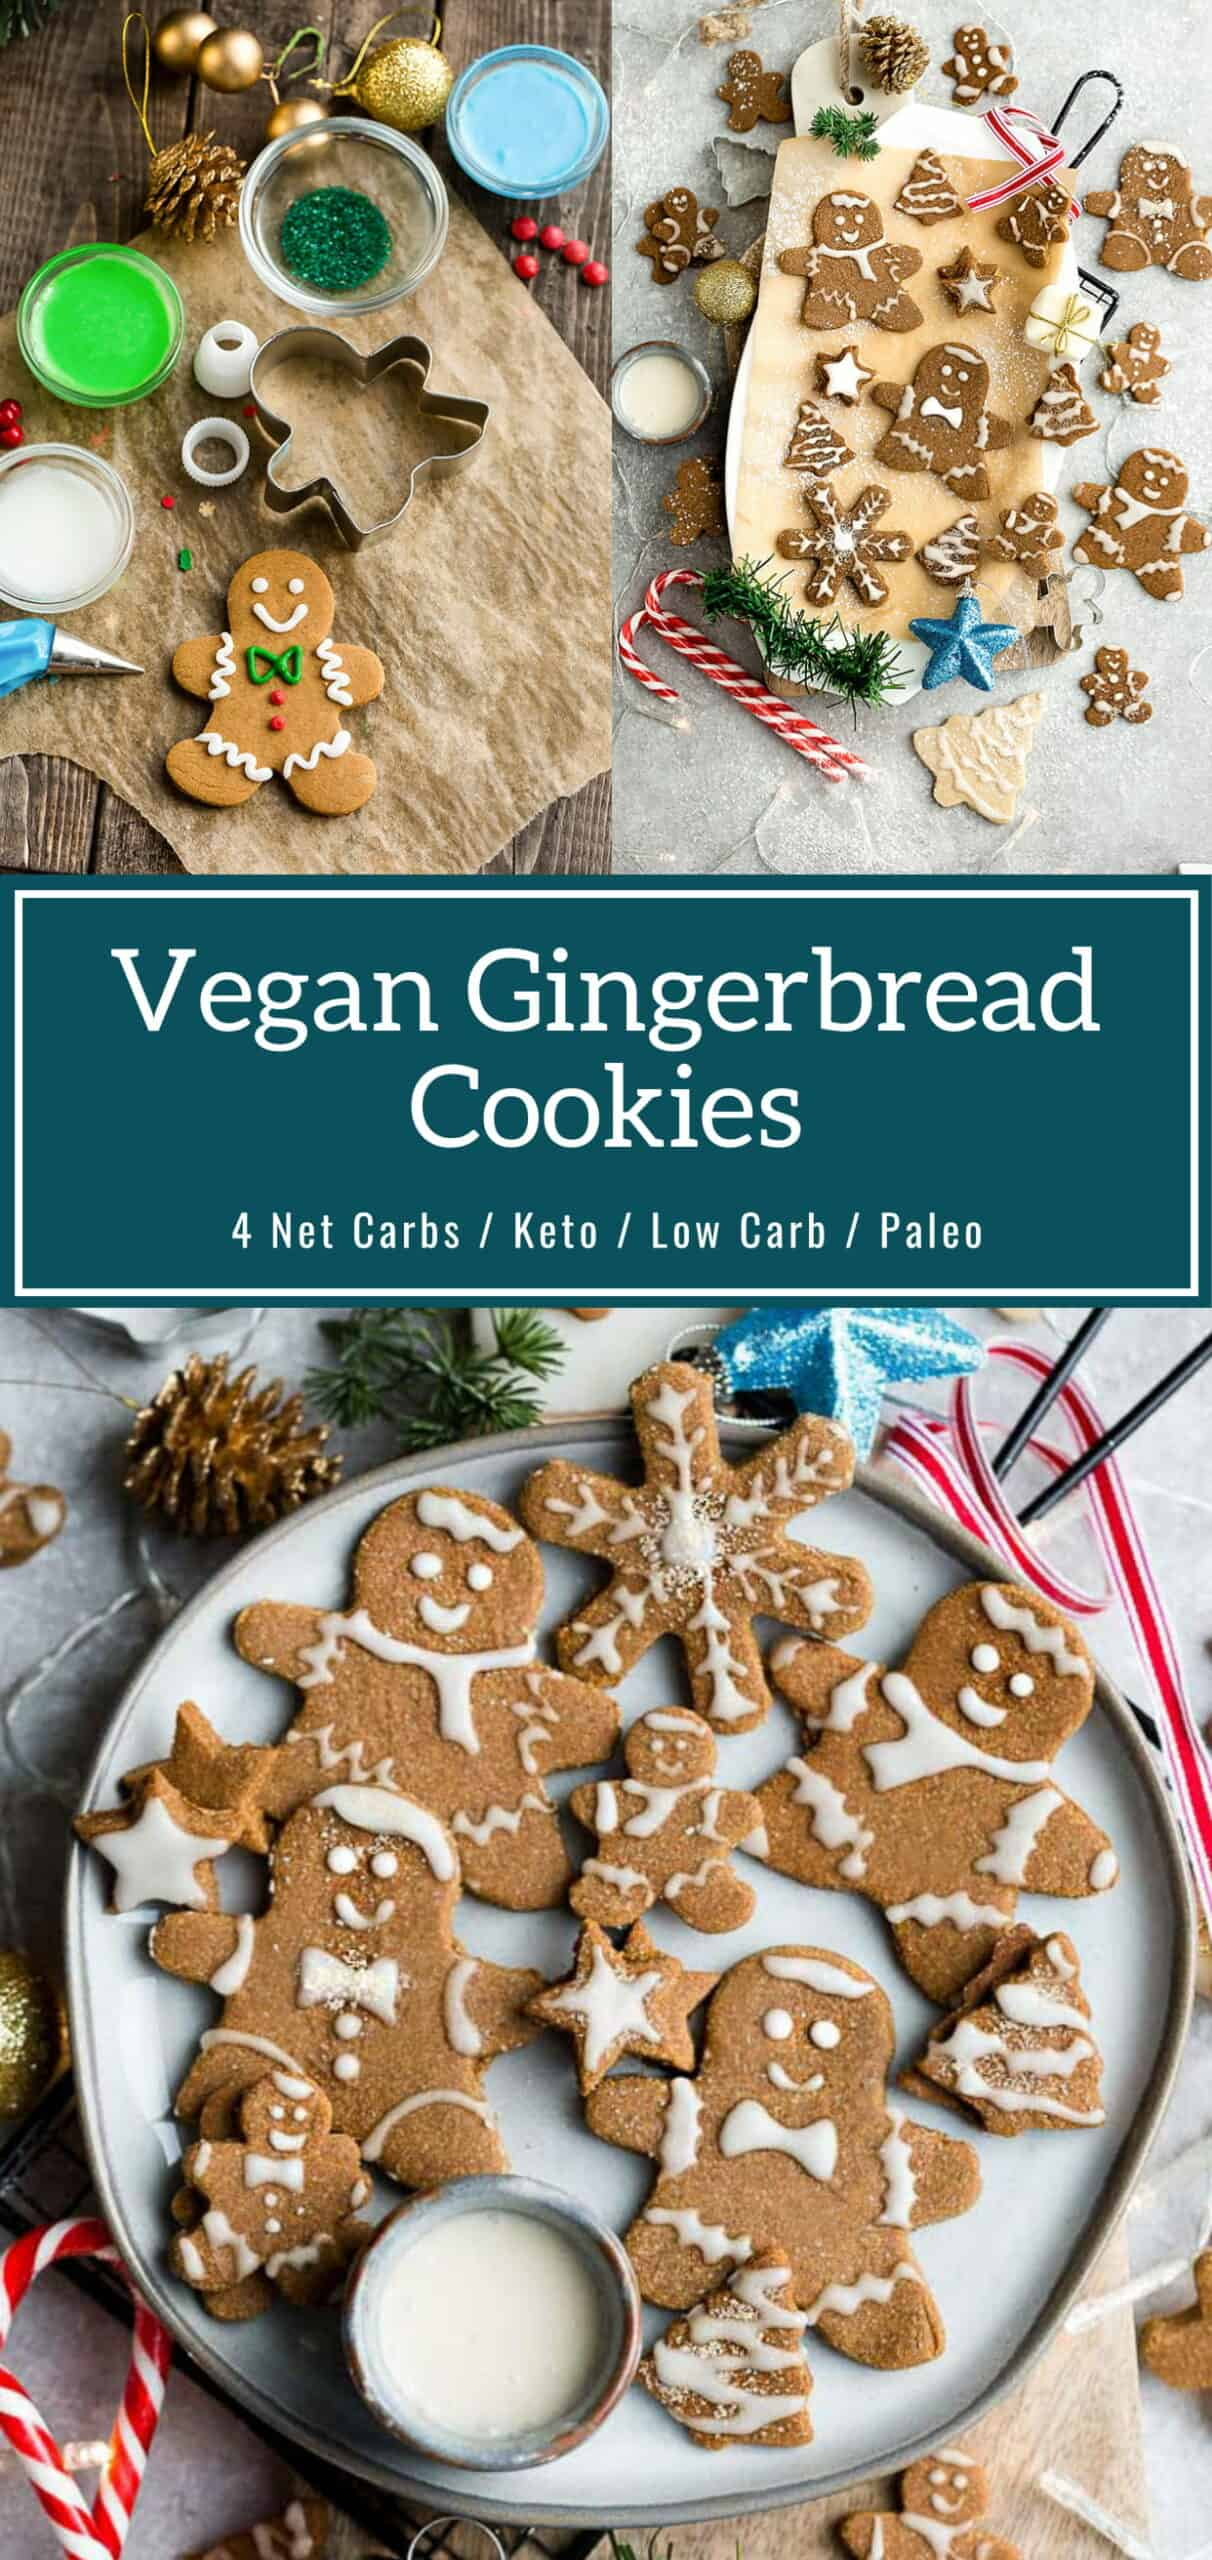 Vegan Gingerbread Cookies Recipe